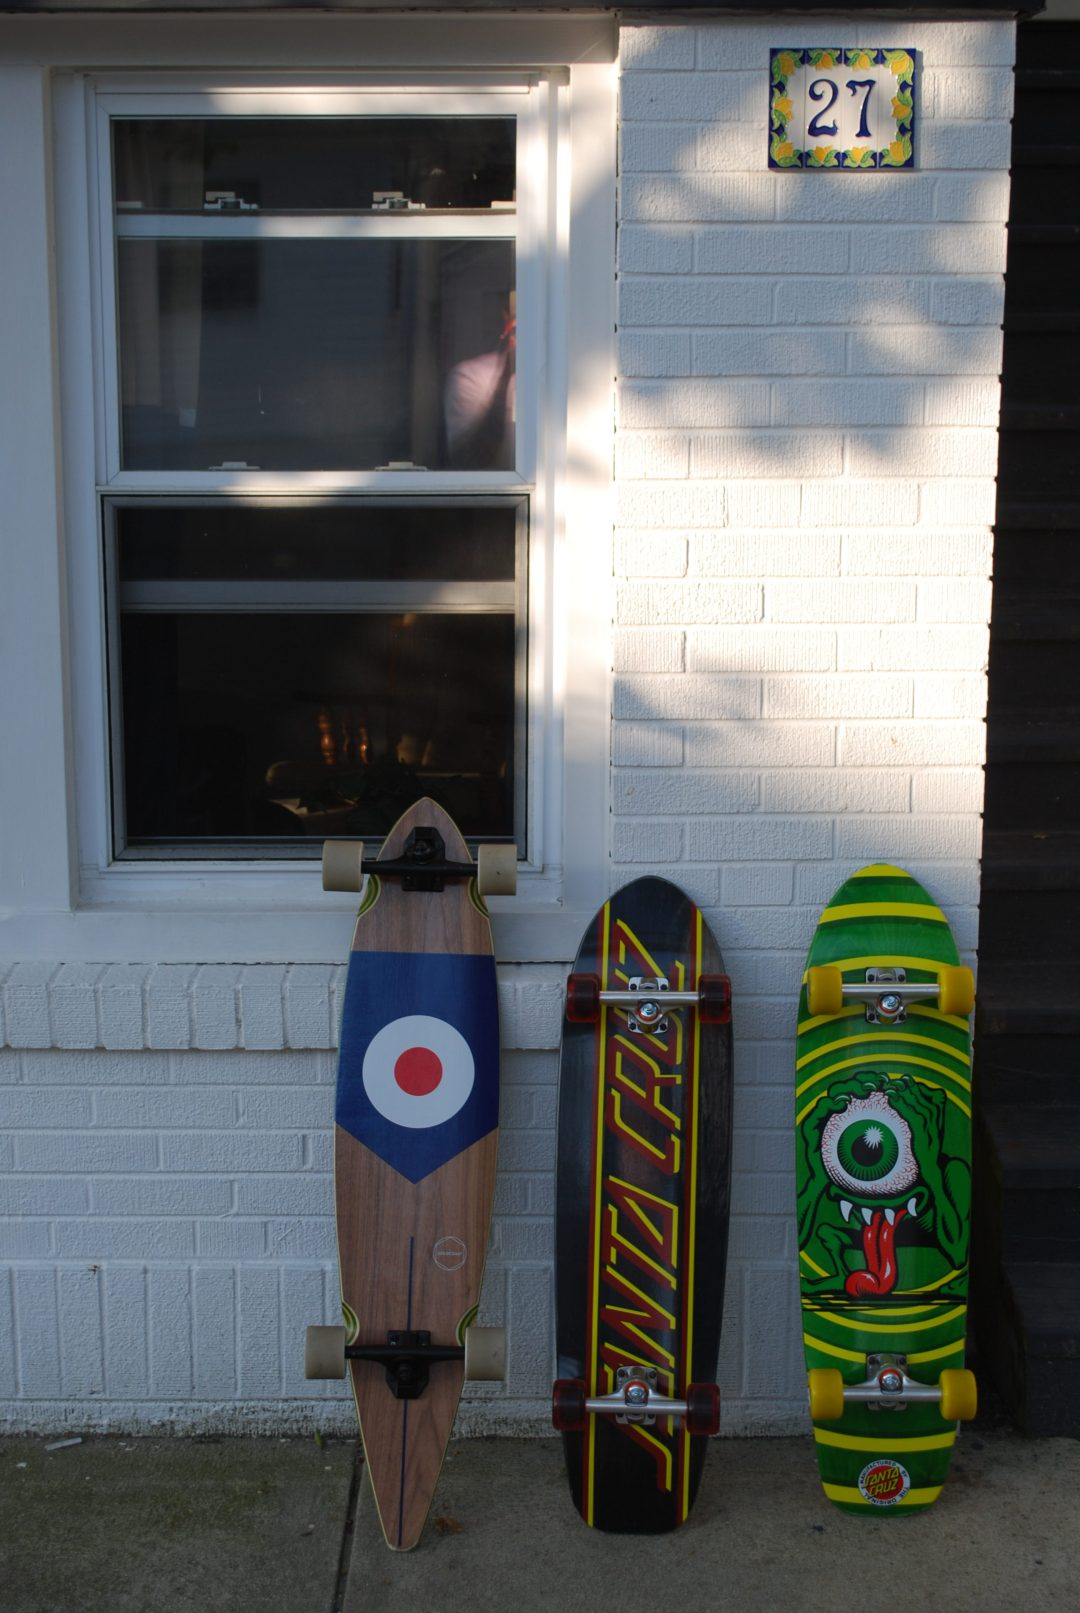 new skate boards at the sober house